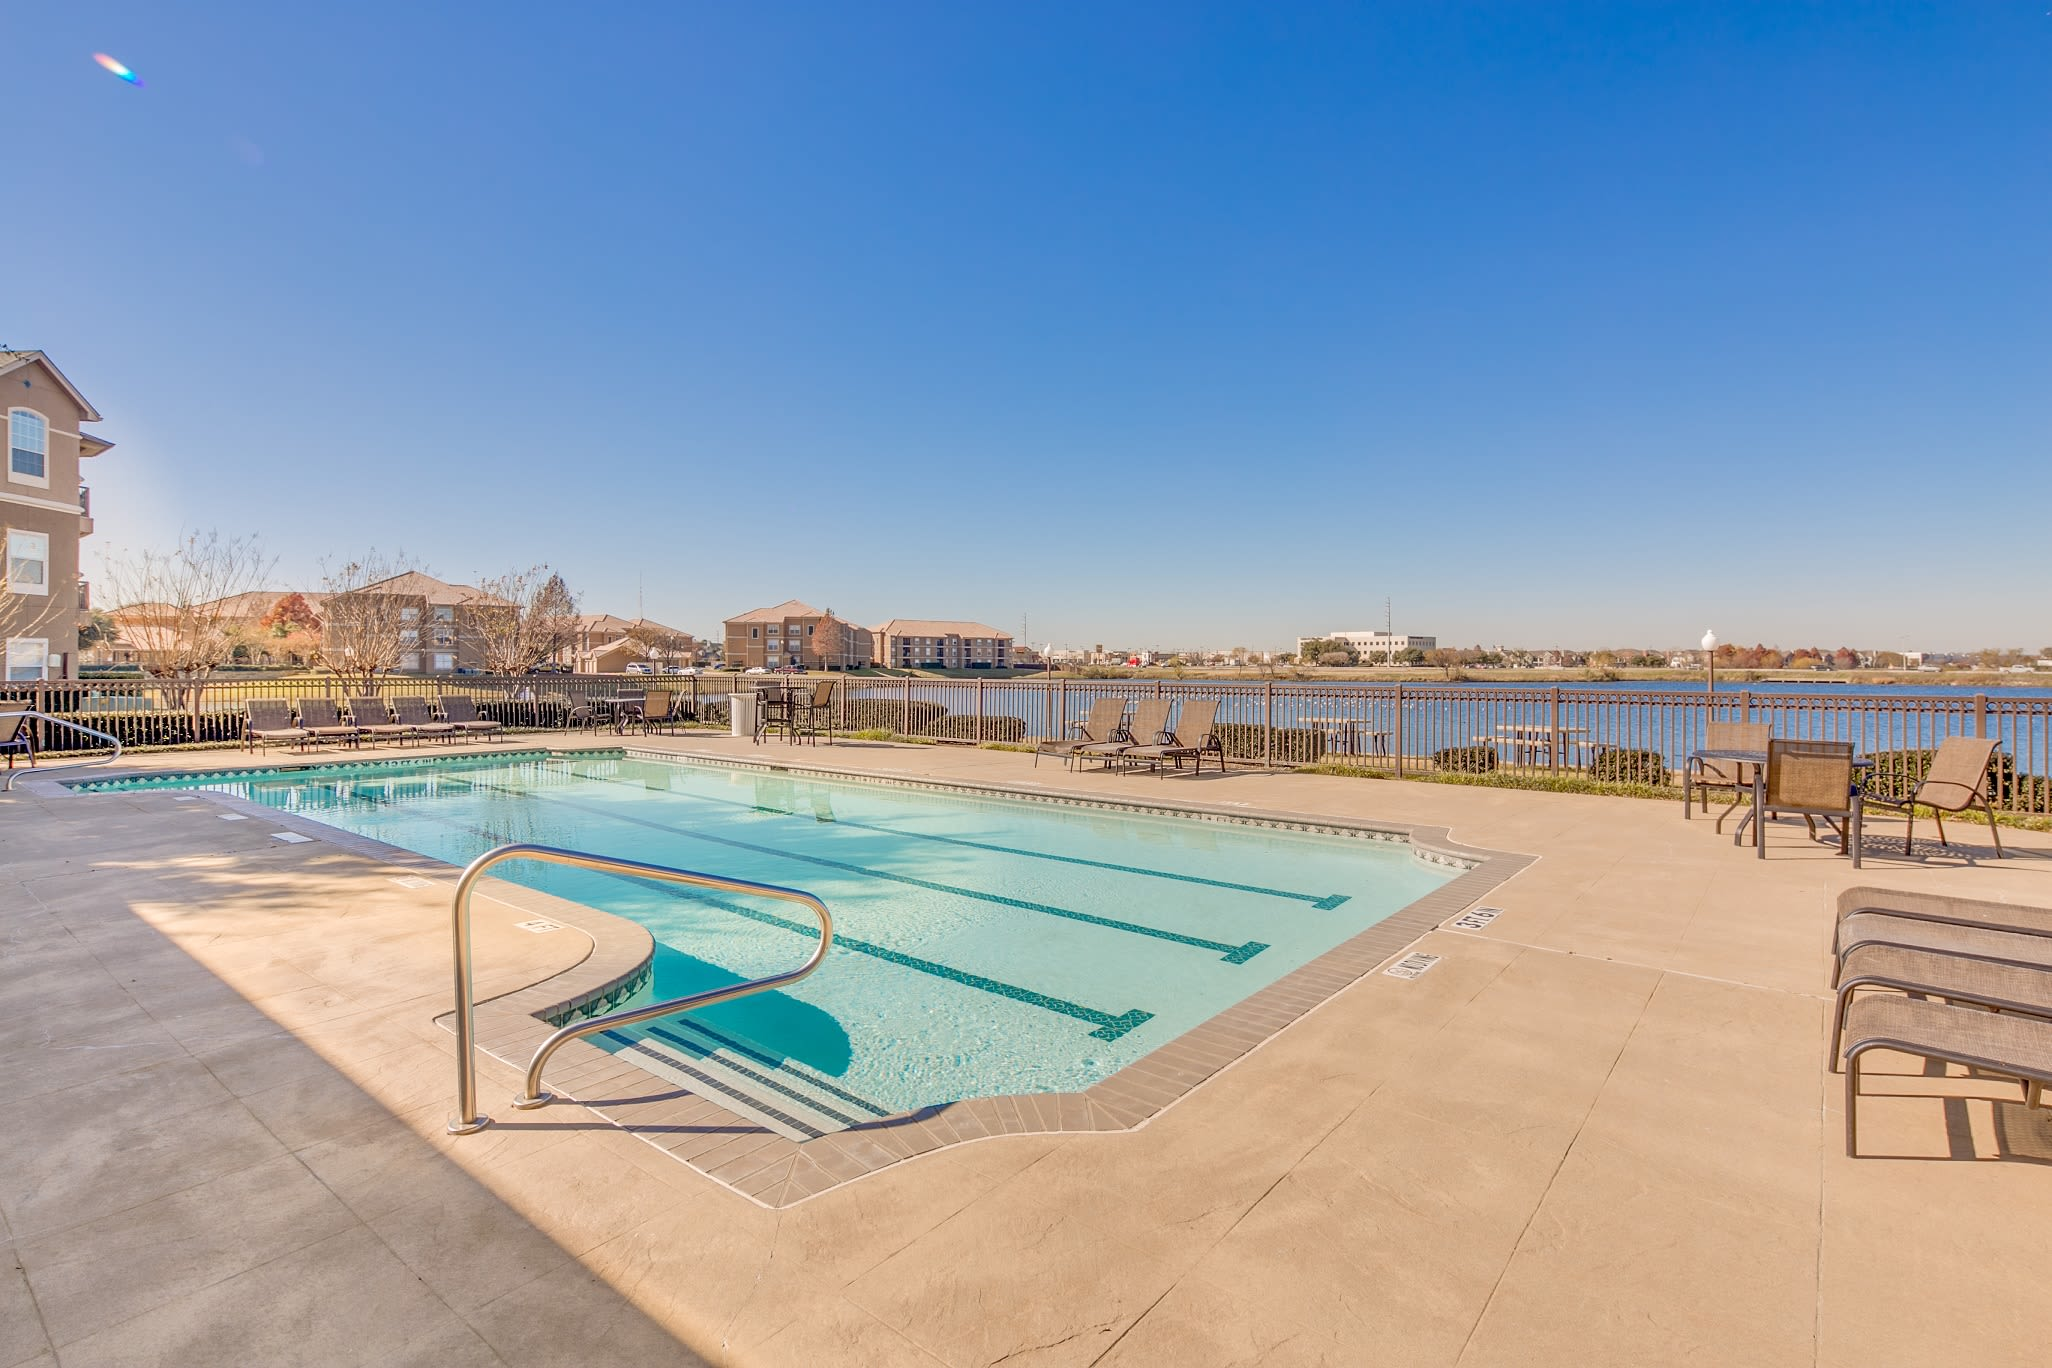 Sand volleyball court at The View at Lakeside in Lewisville, Texas